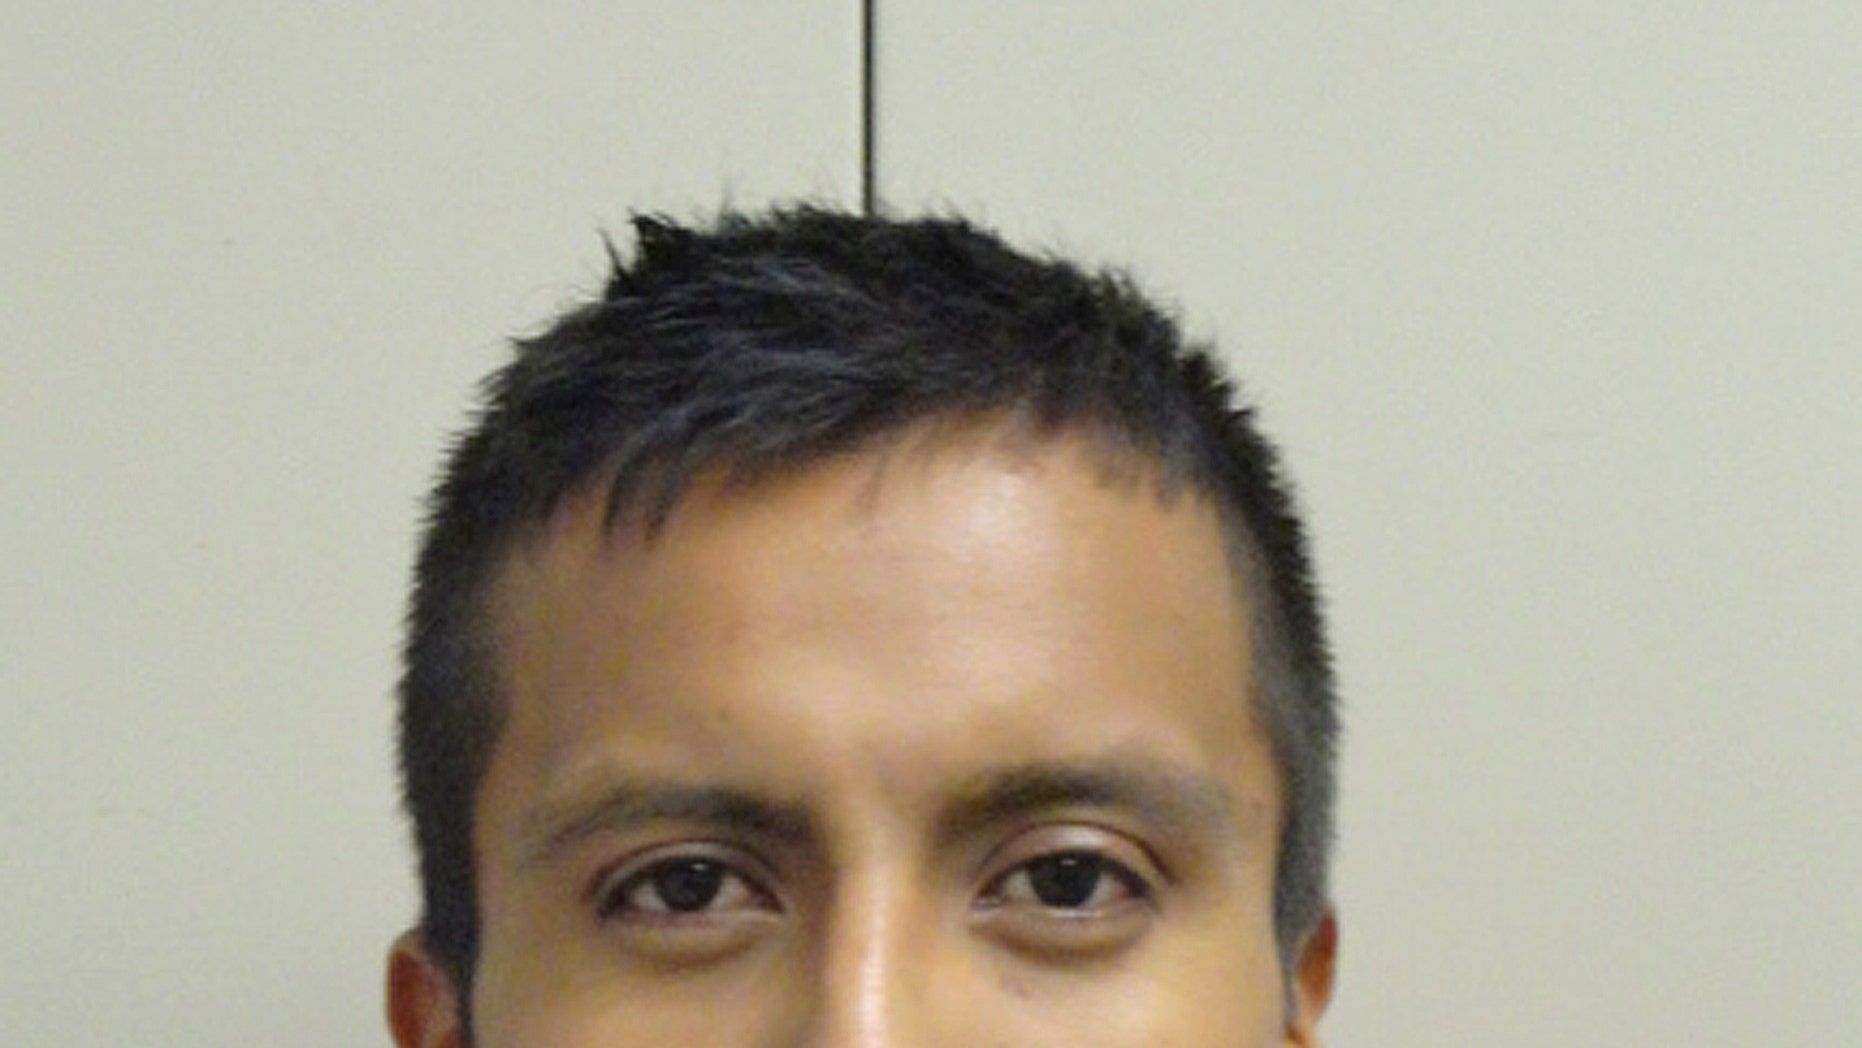 Eduardo Rosas Cruz in an undated photo released by the San Joaquin County District Attorney's Office.